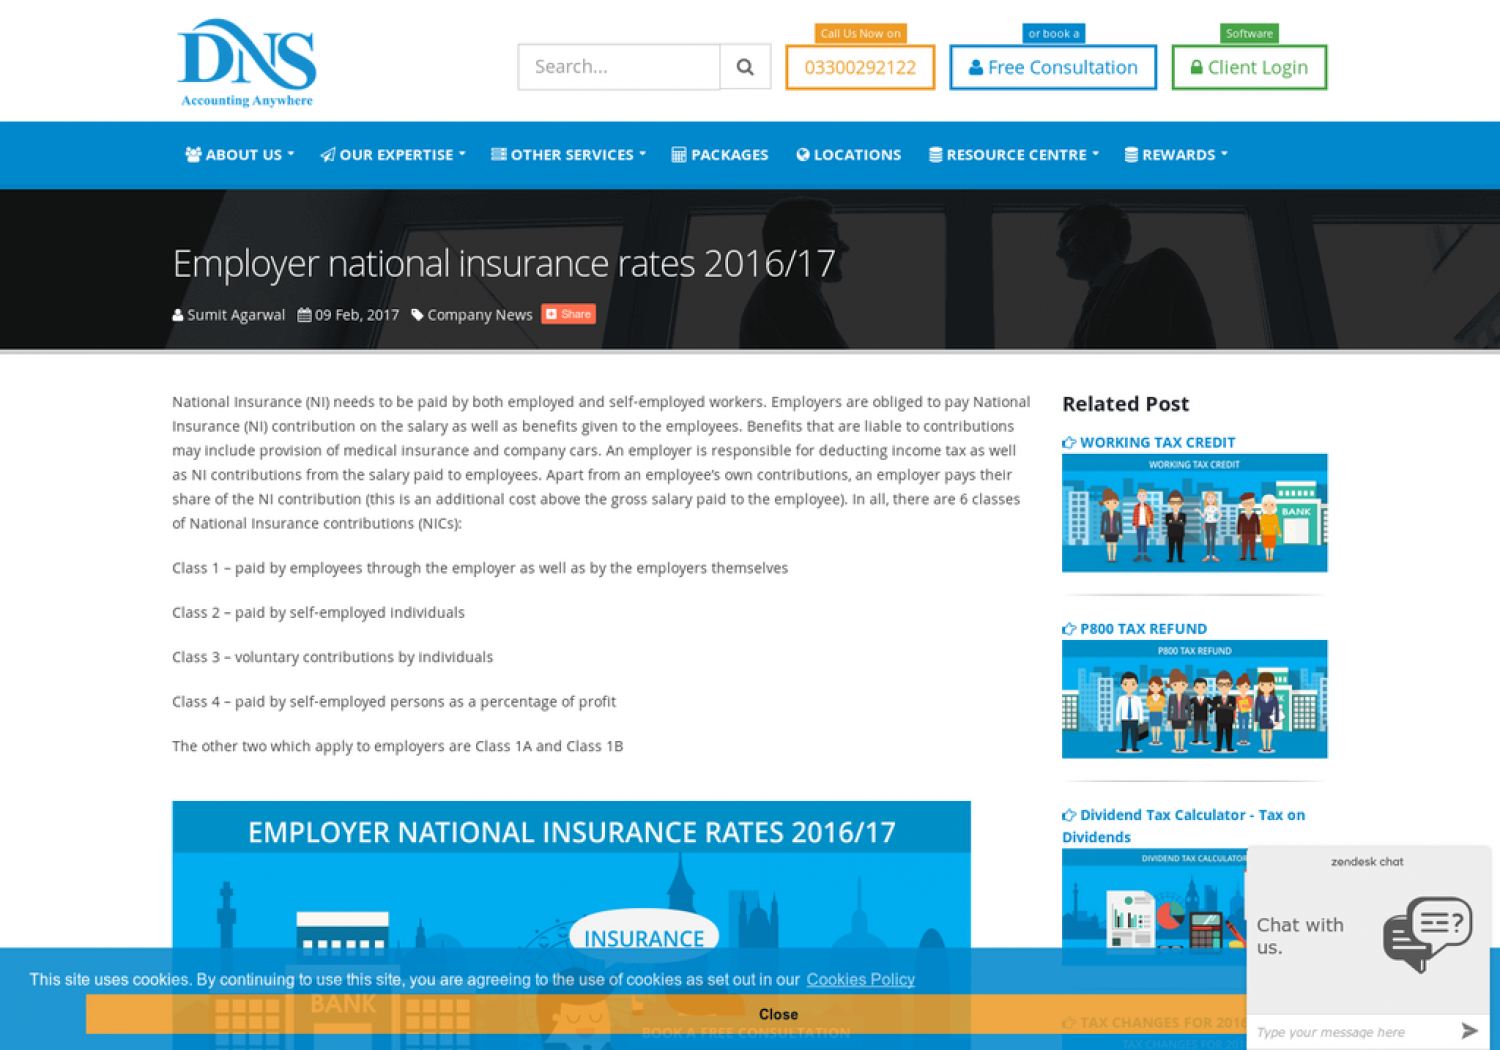 How Much Employer National Insurance Rates? Infographic